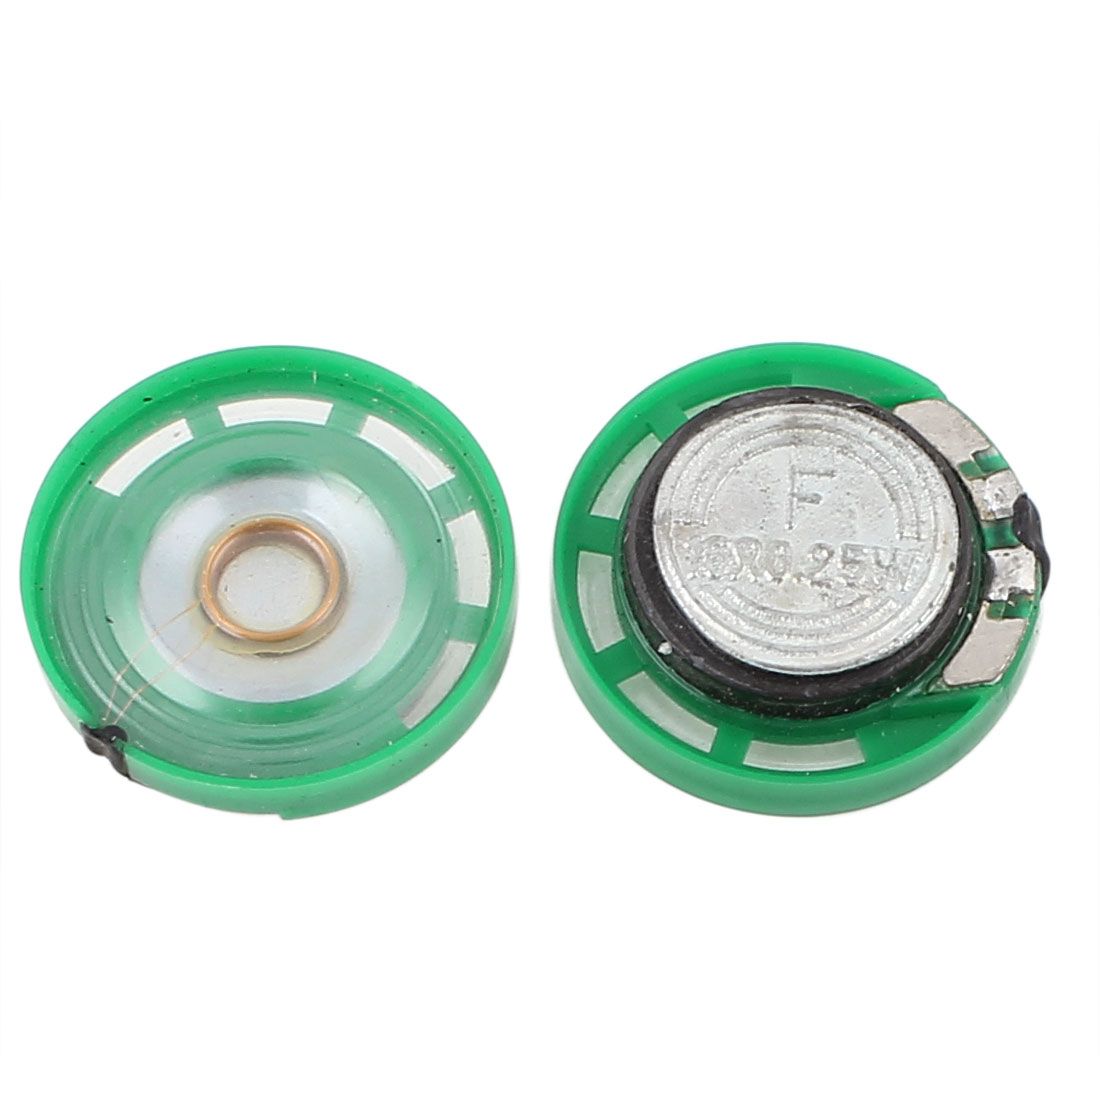 2 Pcs 0.25W 16 Ohm 23mm Round Outside Magnet Electronic Speaker Loudspeaker